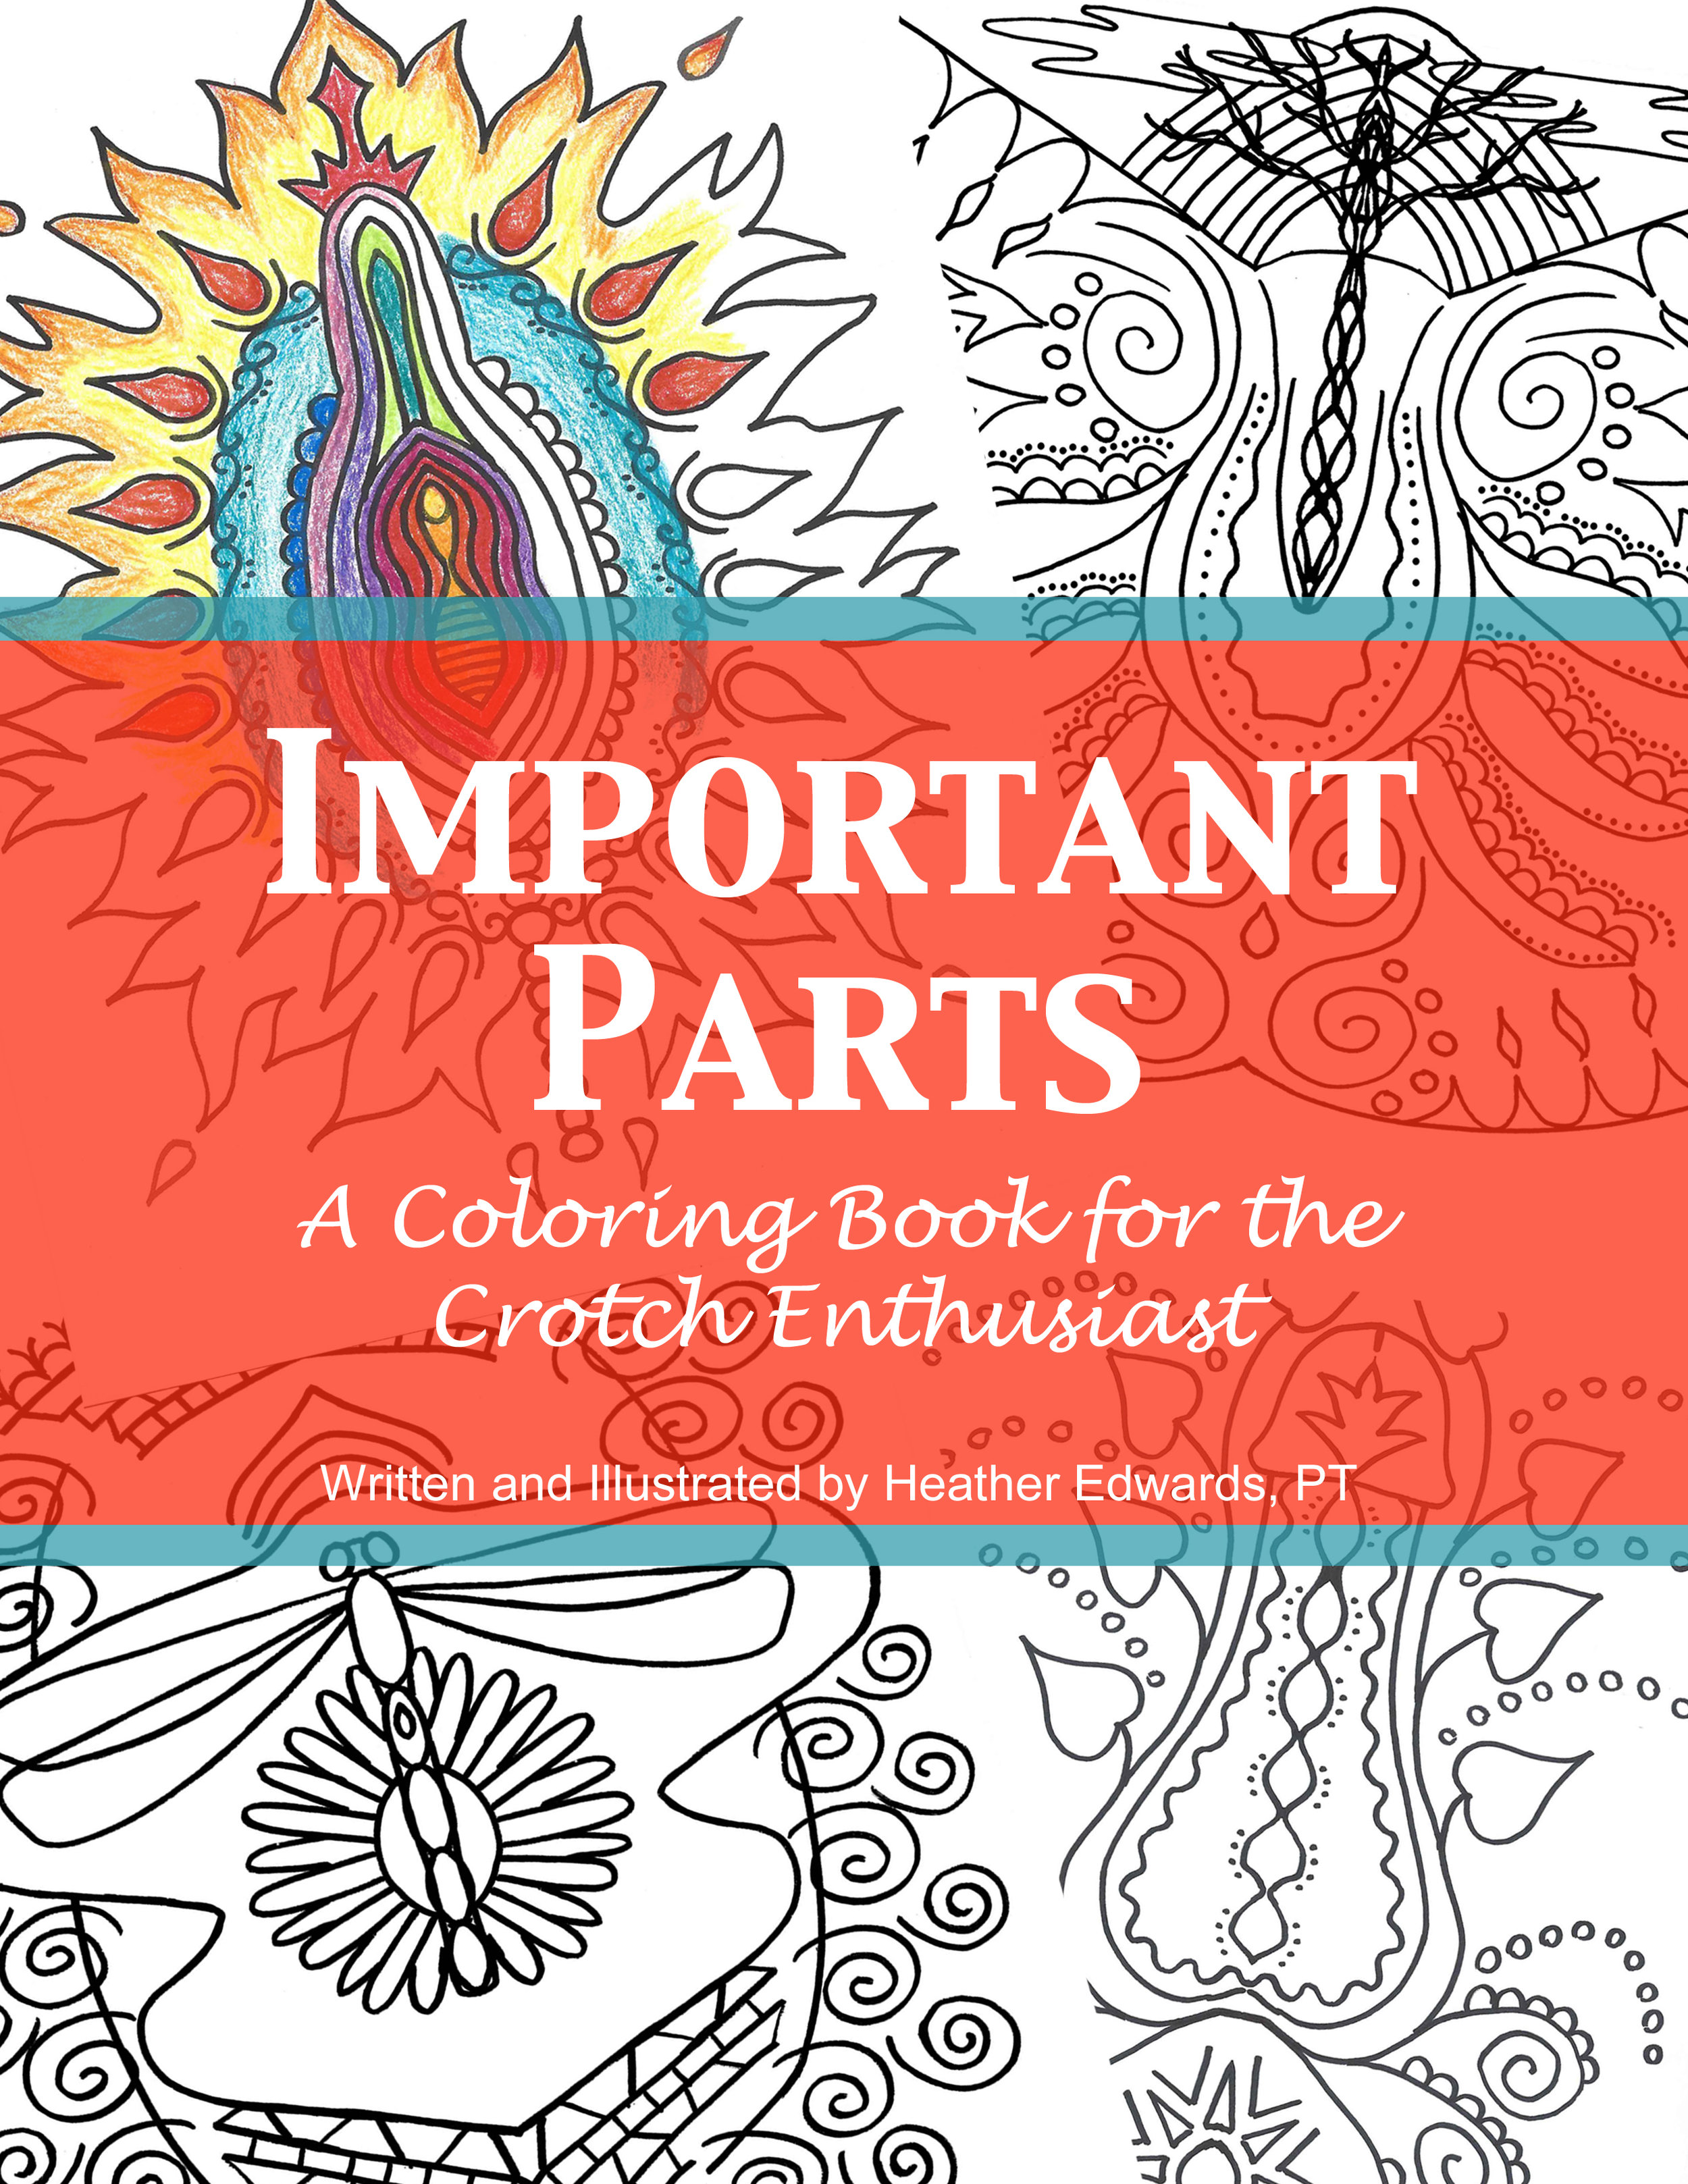 Important Parts: A Coloring Book for the Crotch Enthusiast by Heather Edwards is now available!!